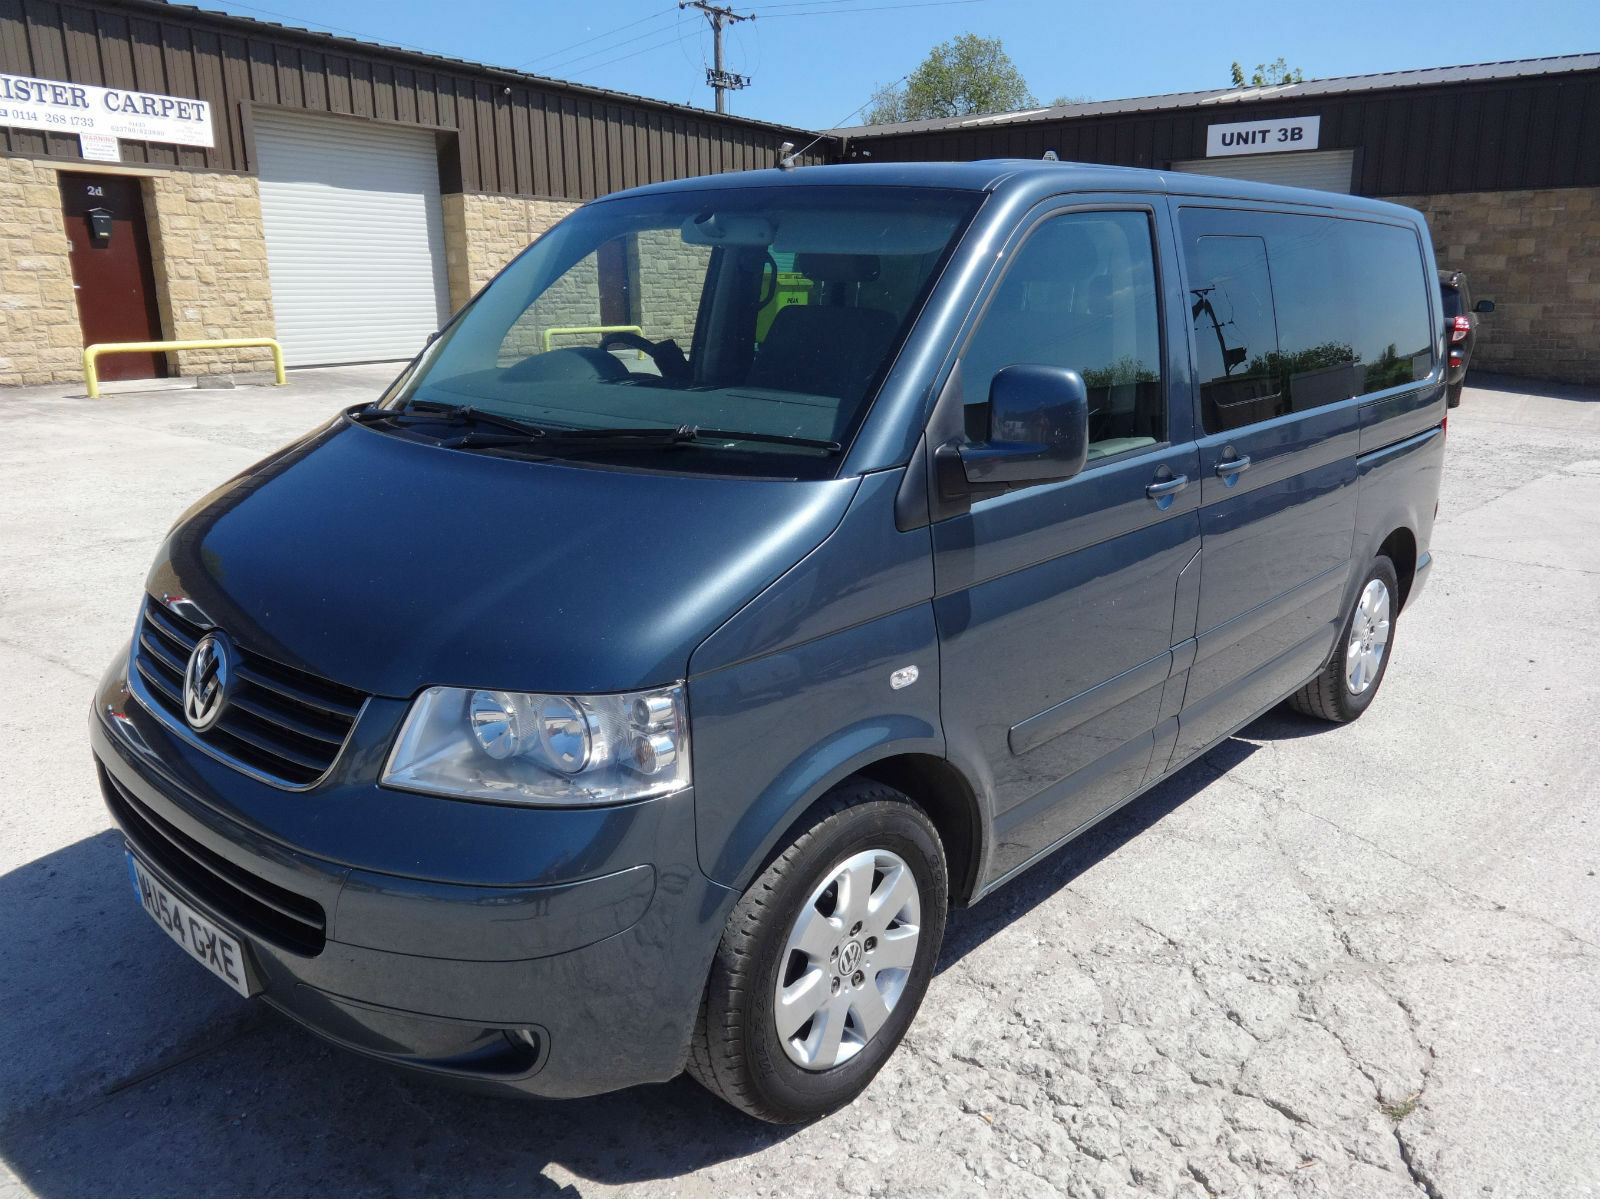 2005 vw caravelle 2 5tdi 174ps se t5 transporter 1 owner police authority 12. Black Bedroom Furniture Sets. Home Design Ideas